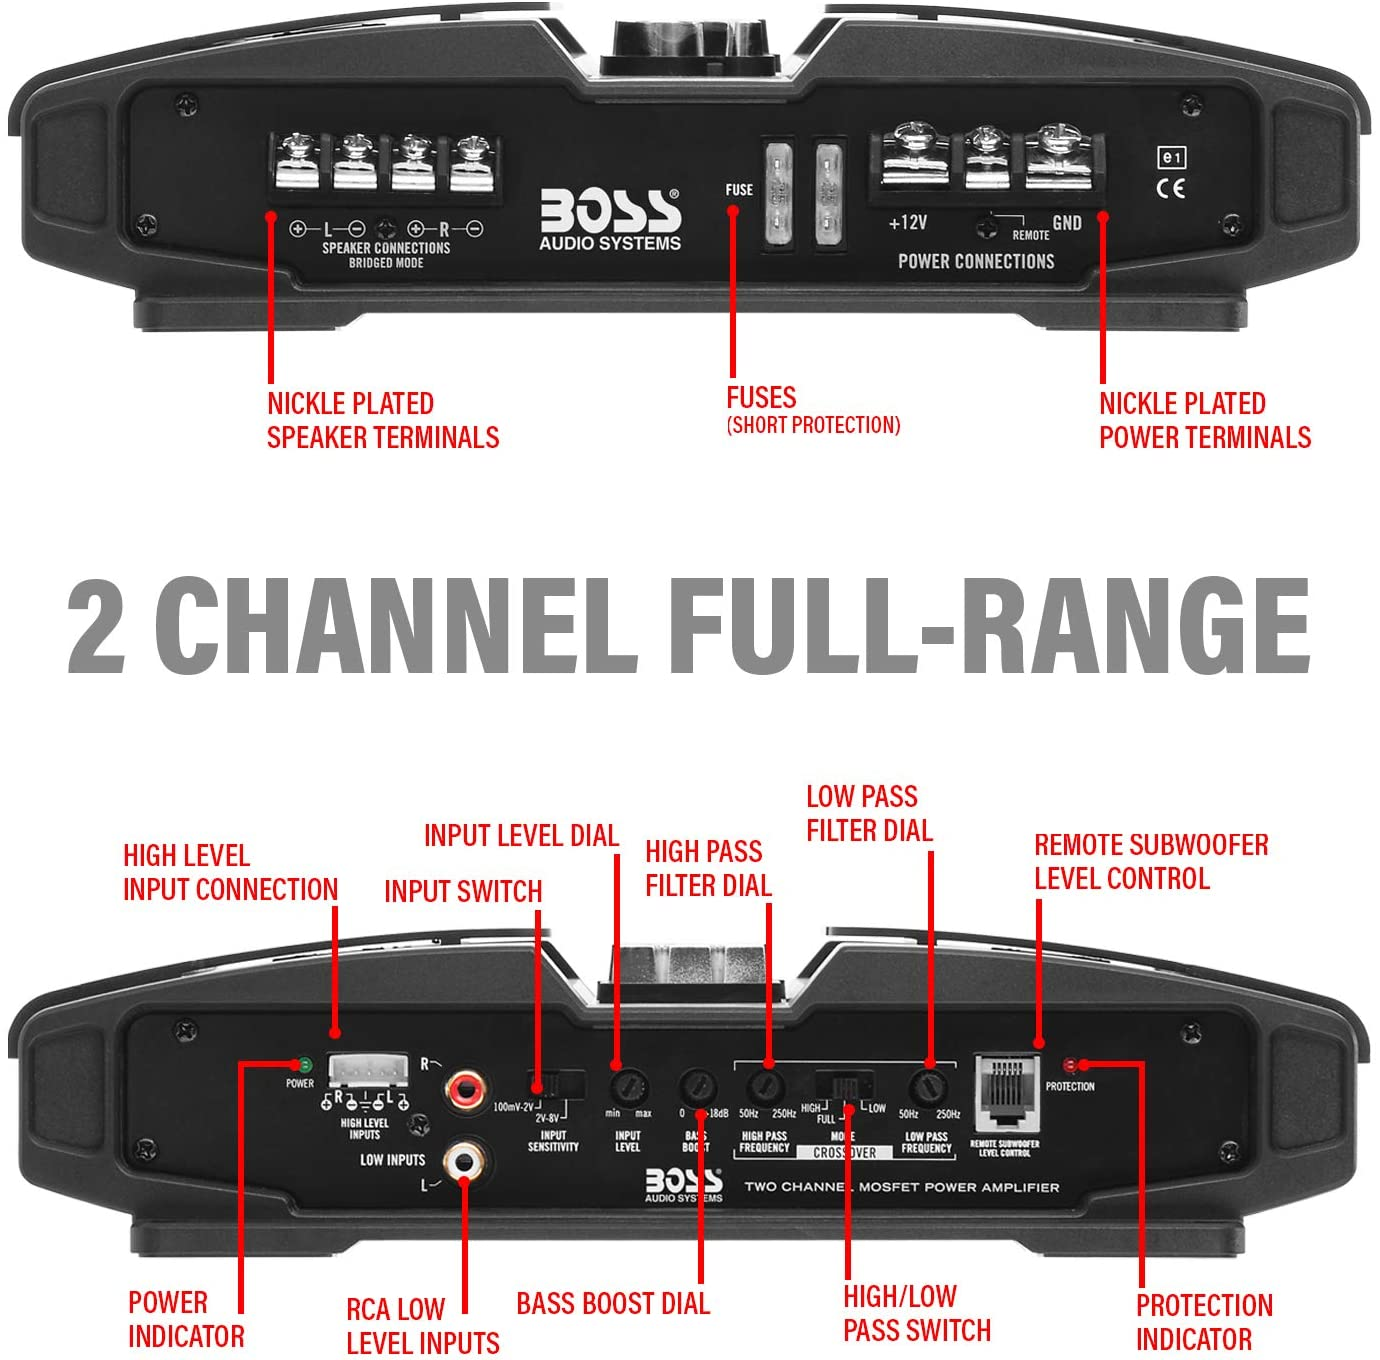 1600 Watts Mosfet Power Supply Class A//B 2-8 Ohm Stable Full Range Bridgeable BOSS Audio Systems PT1600 2 Channel Car Amplifier